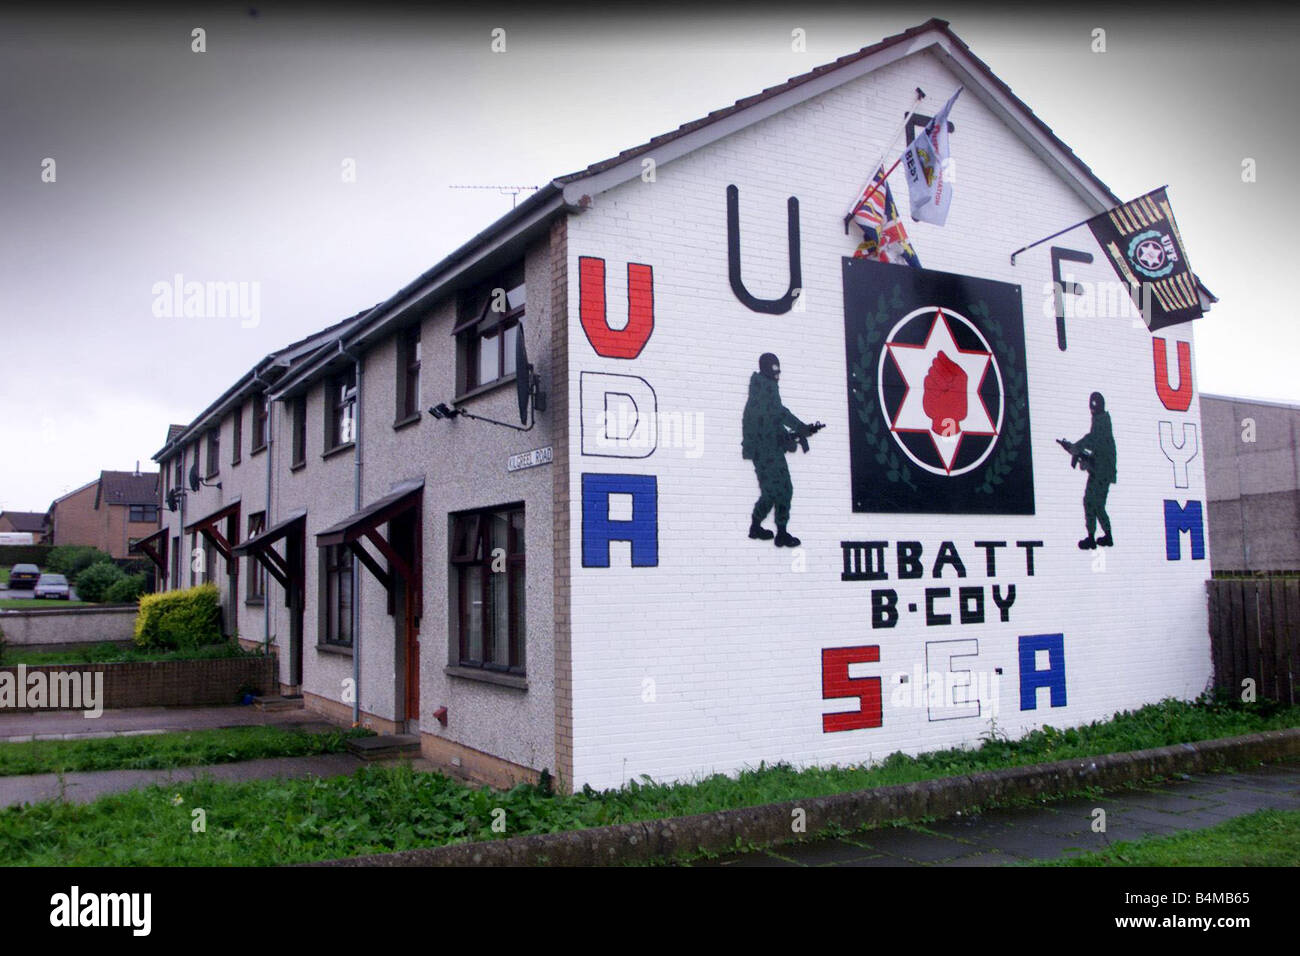 UDA Mural At The Parkhall Estate In Antrim September 2002 Stock Photo